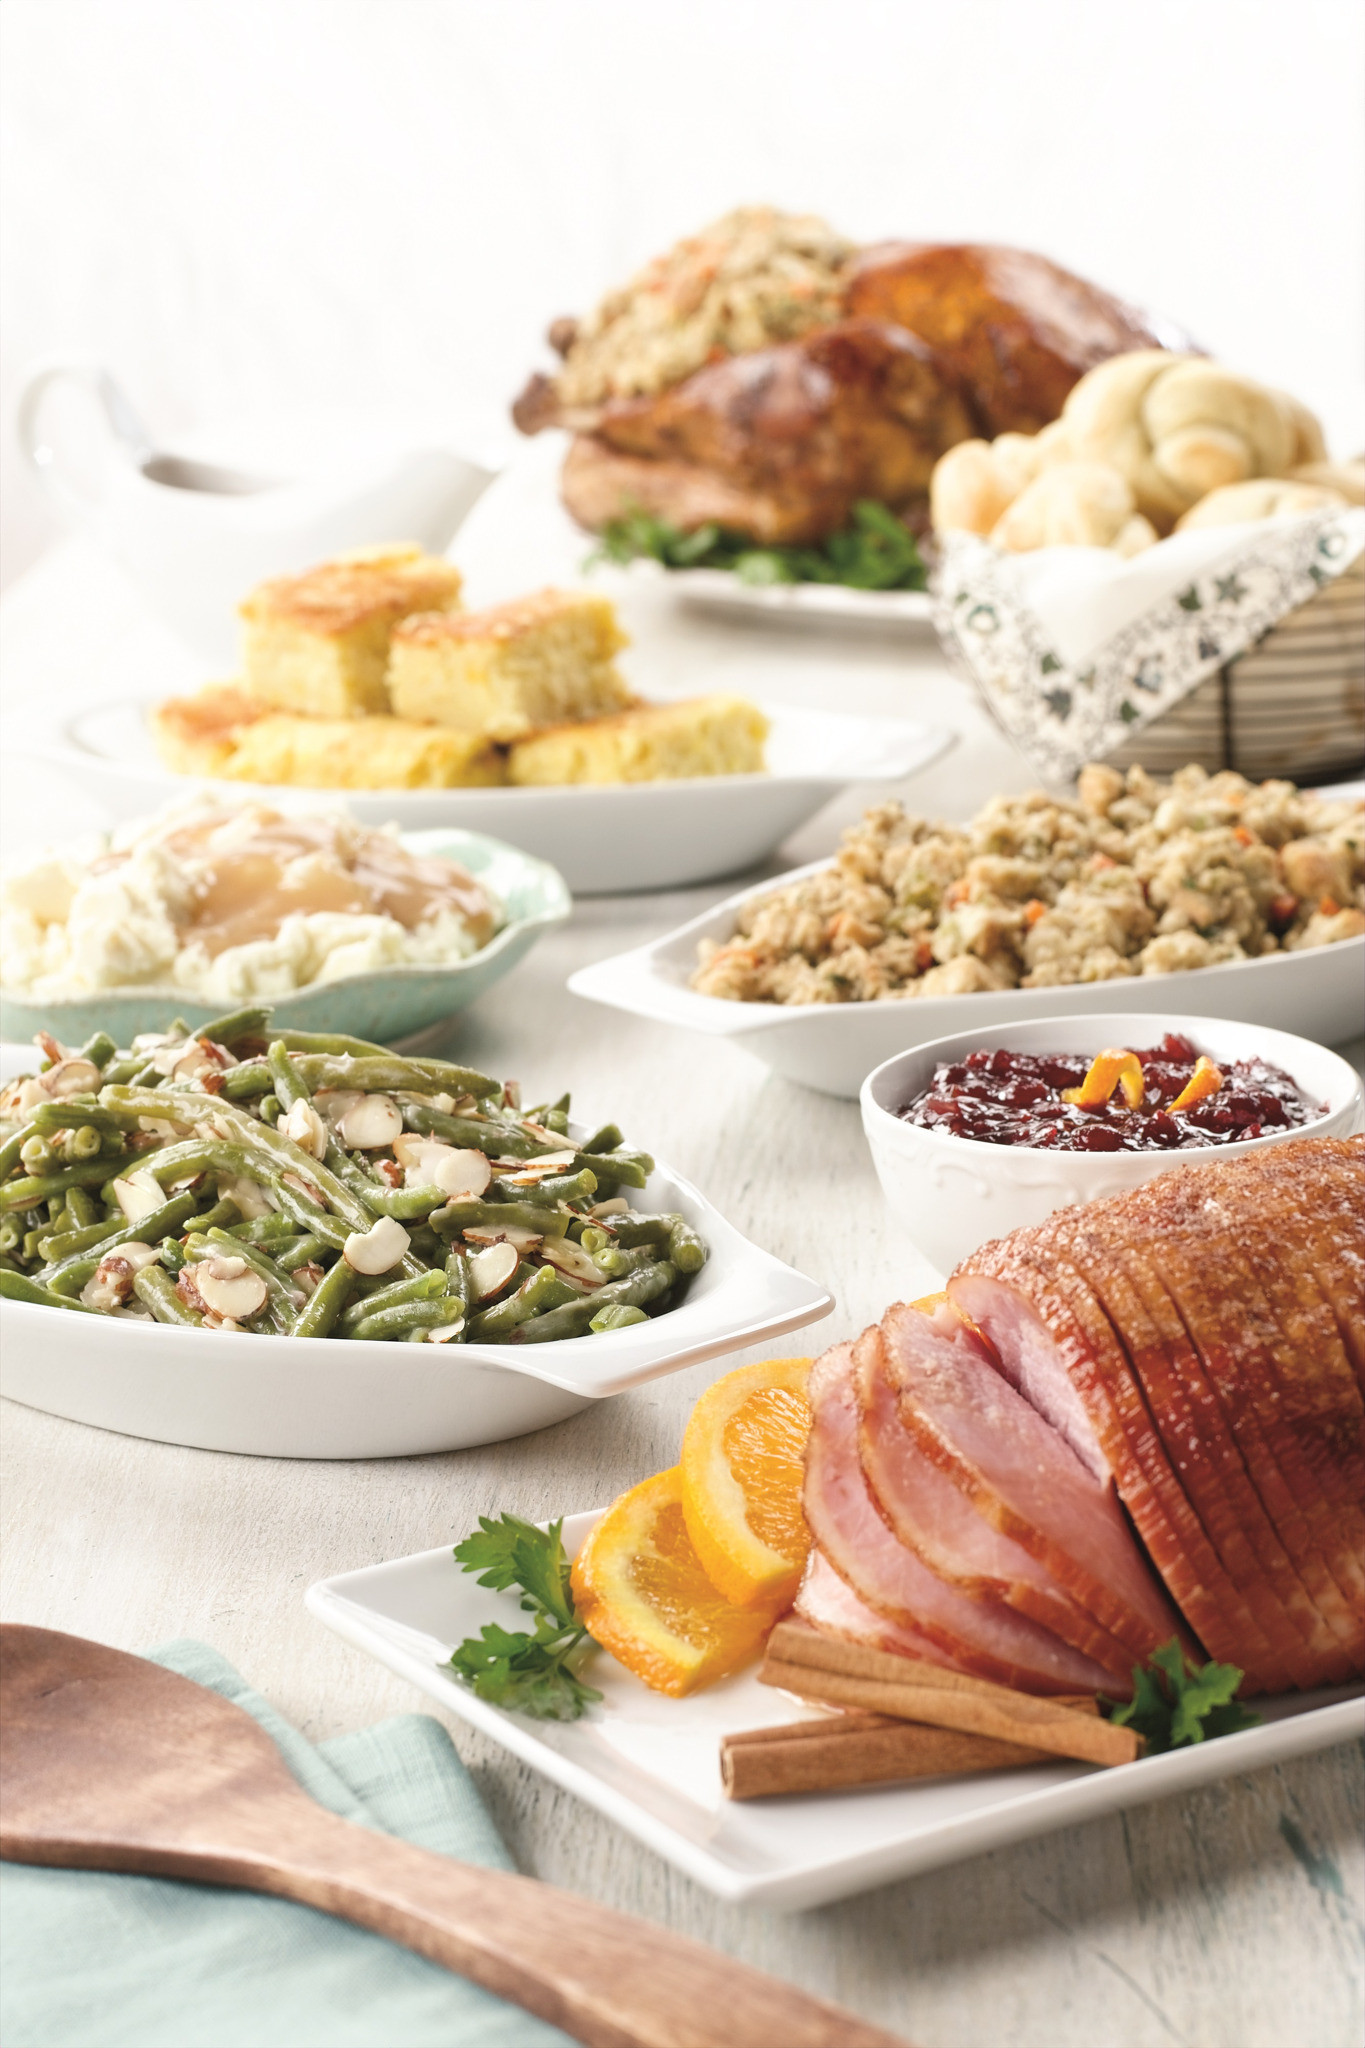 Fresh Market Thanksgiving Dinners  The Fresh Market Provides Holiday Meal Options for an